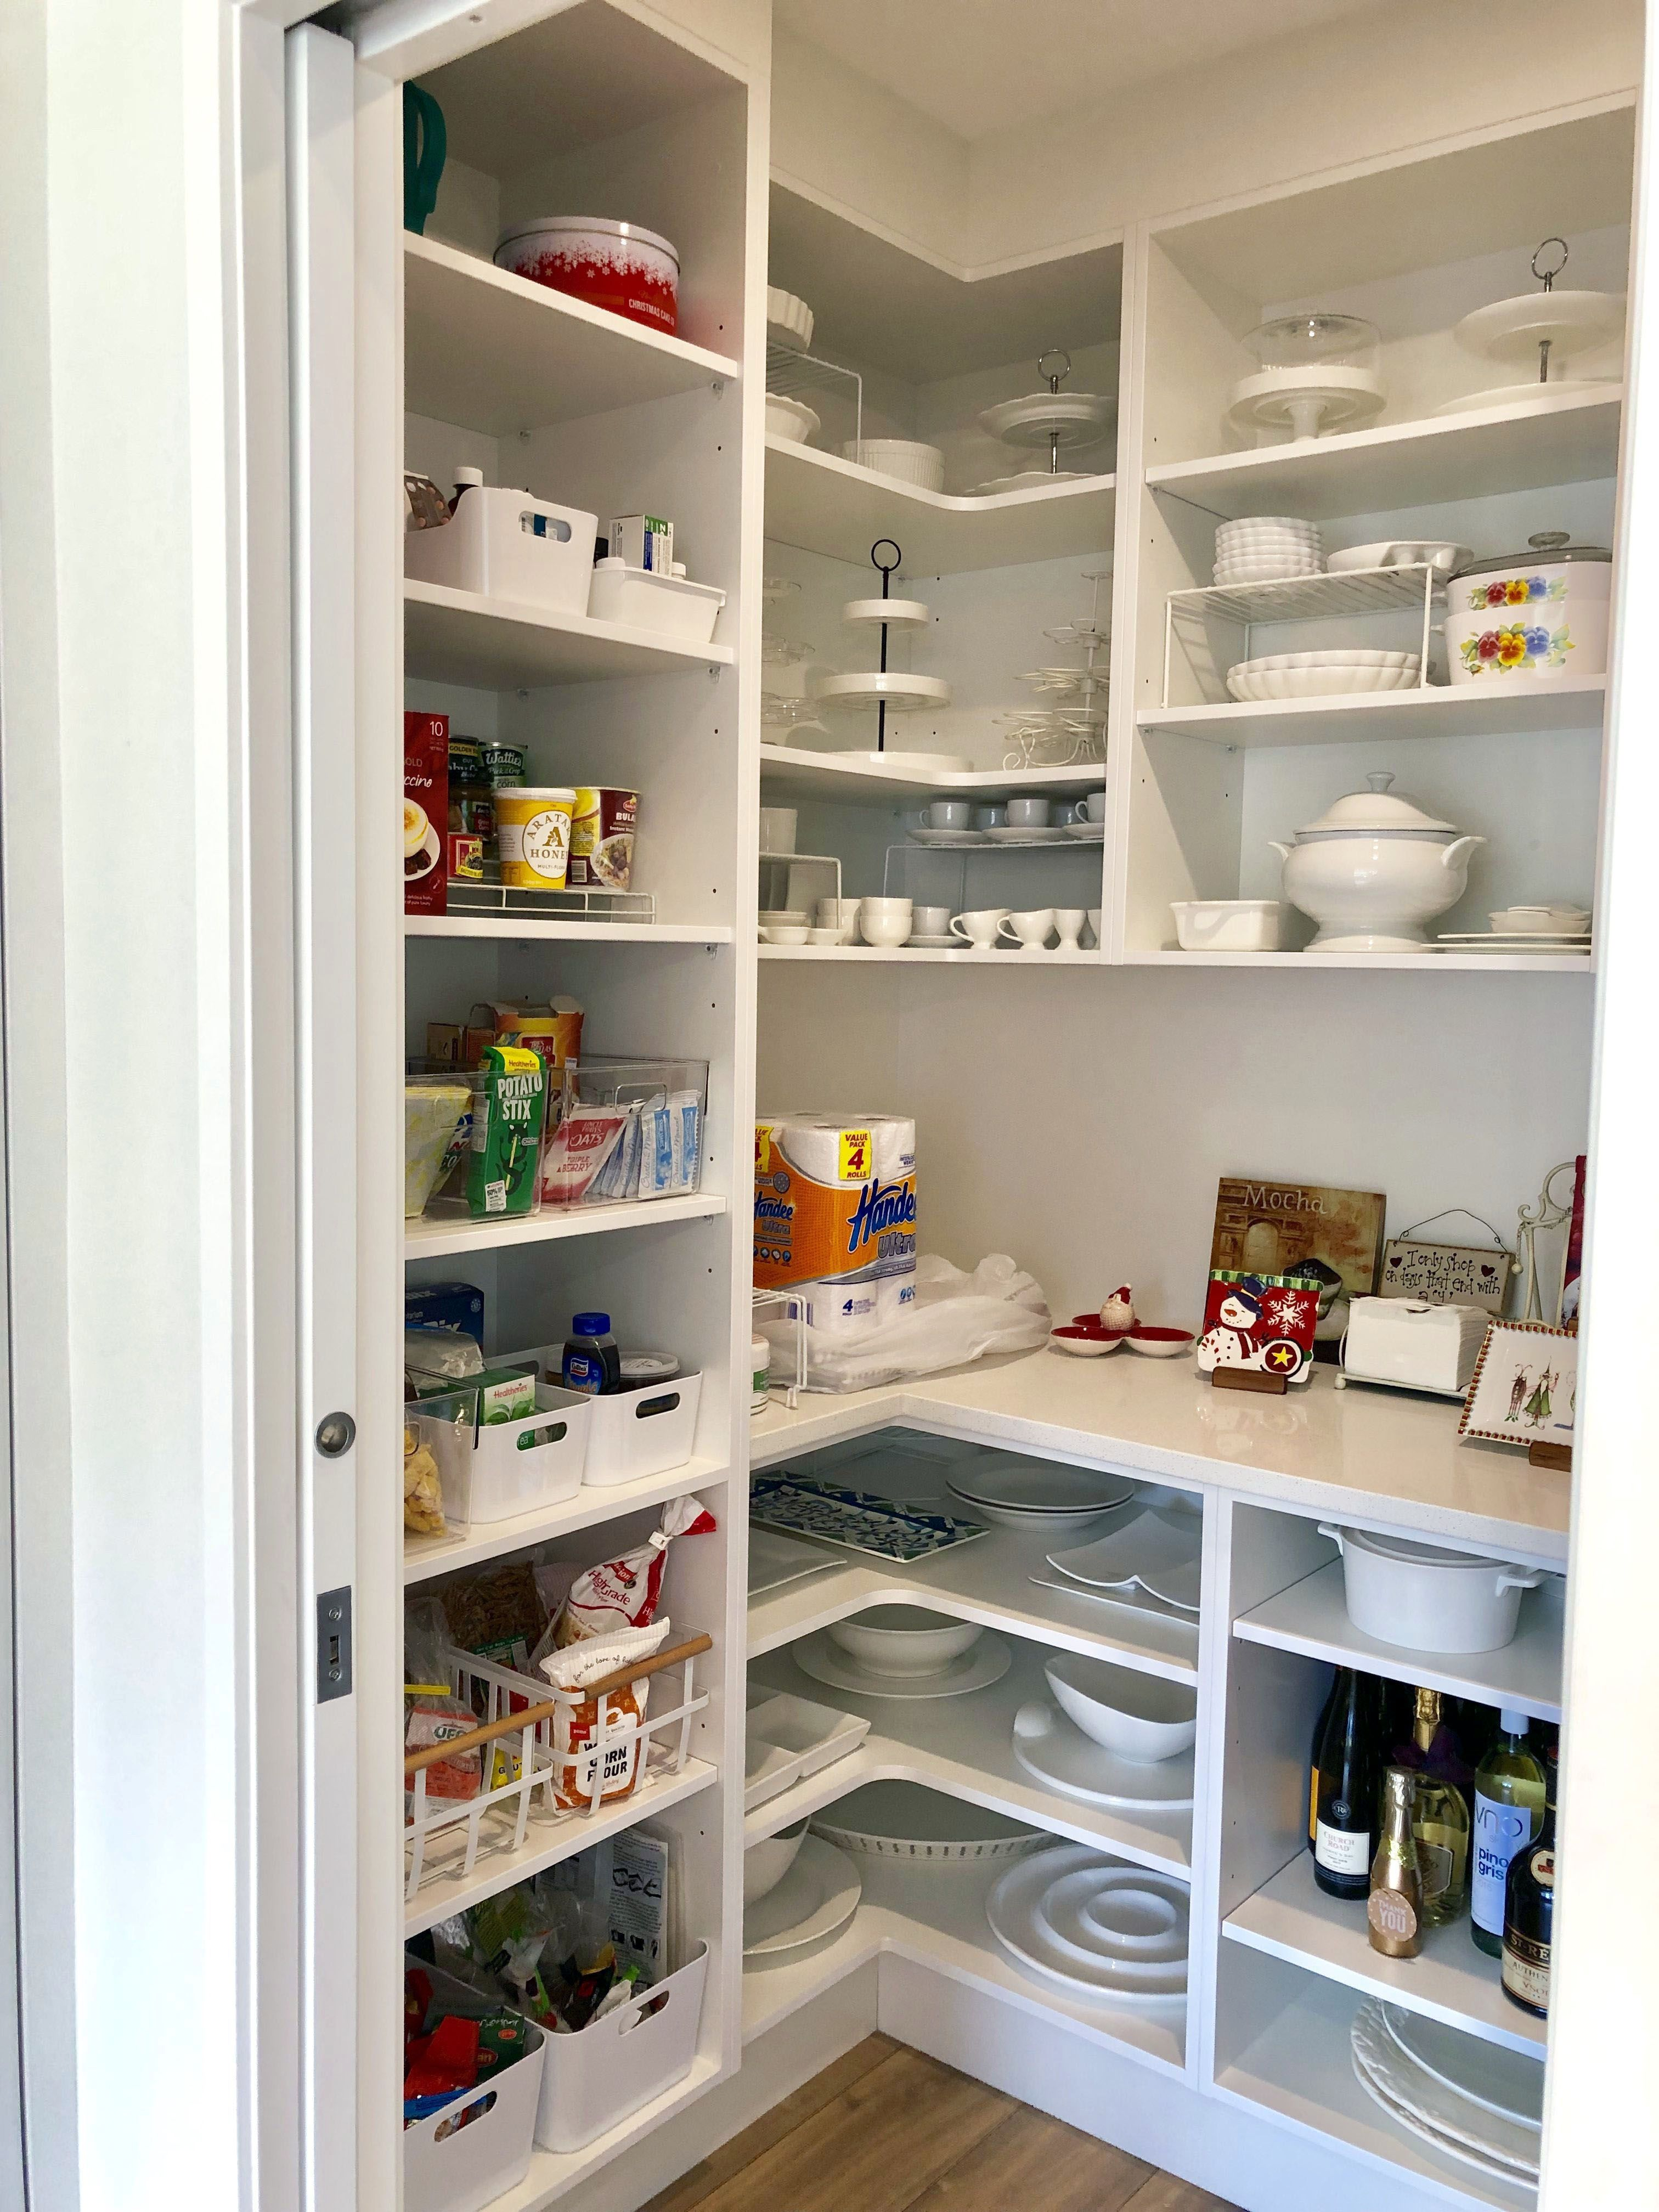 8 Smart Storage Space Suggestions for TeenyTiny Pantries